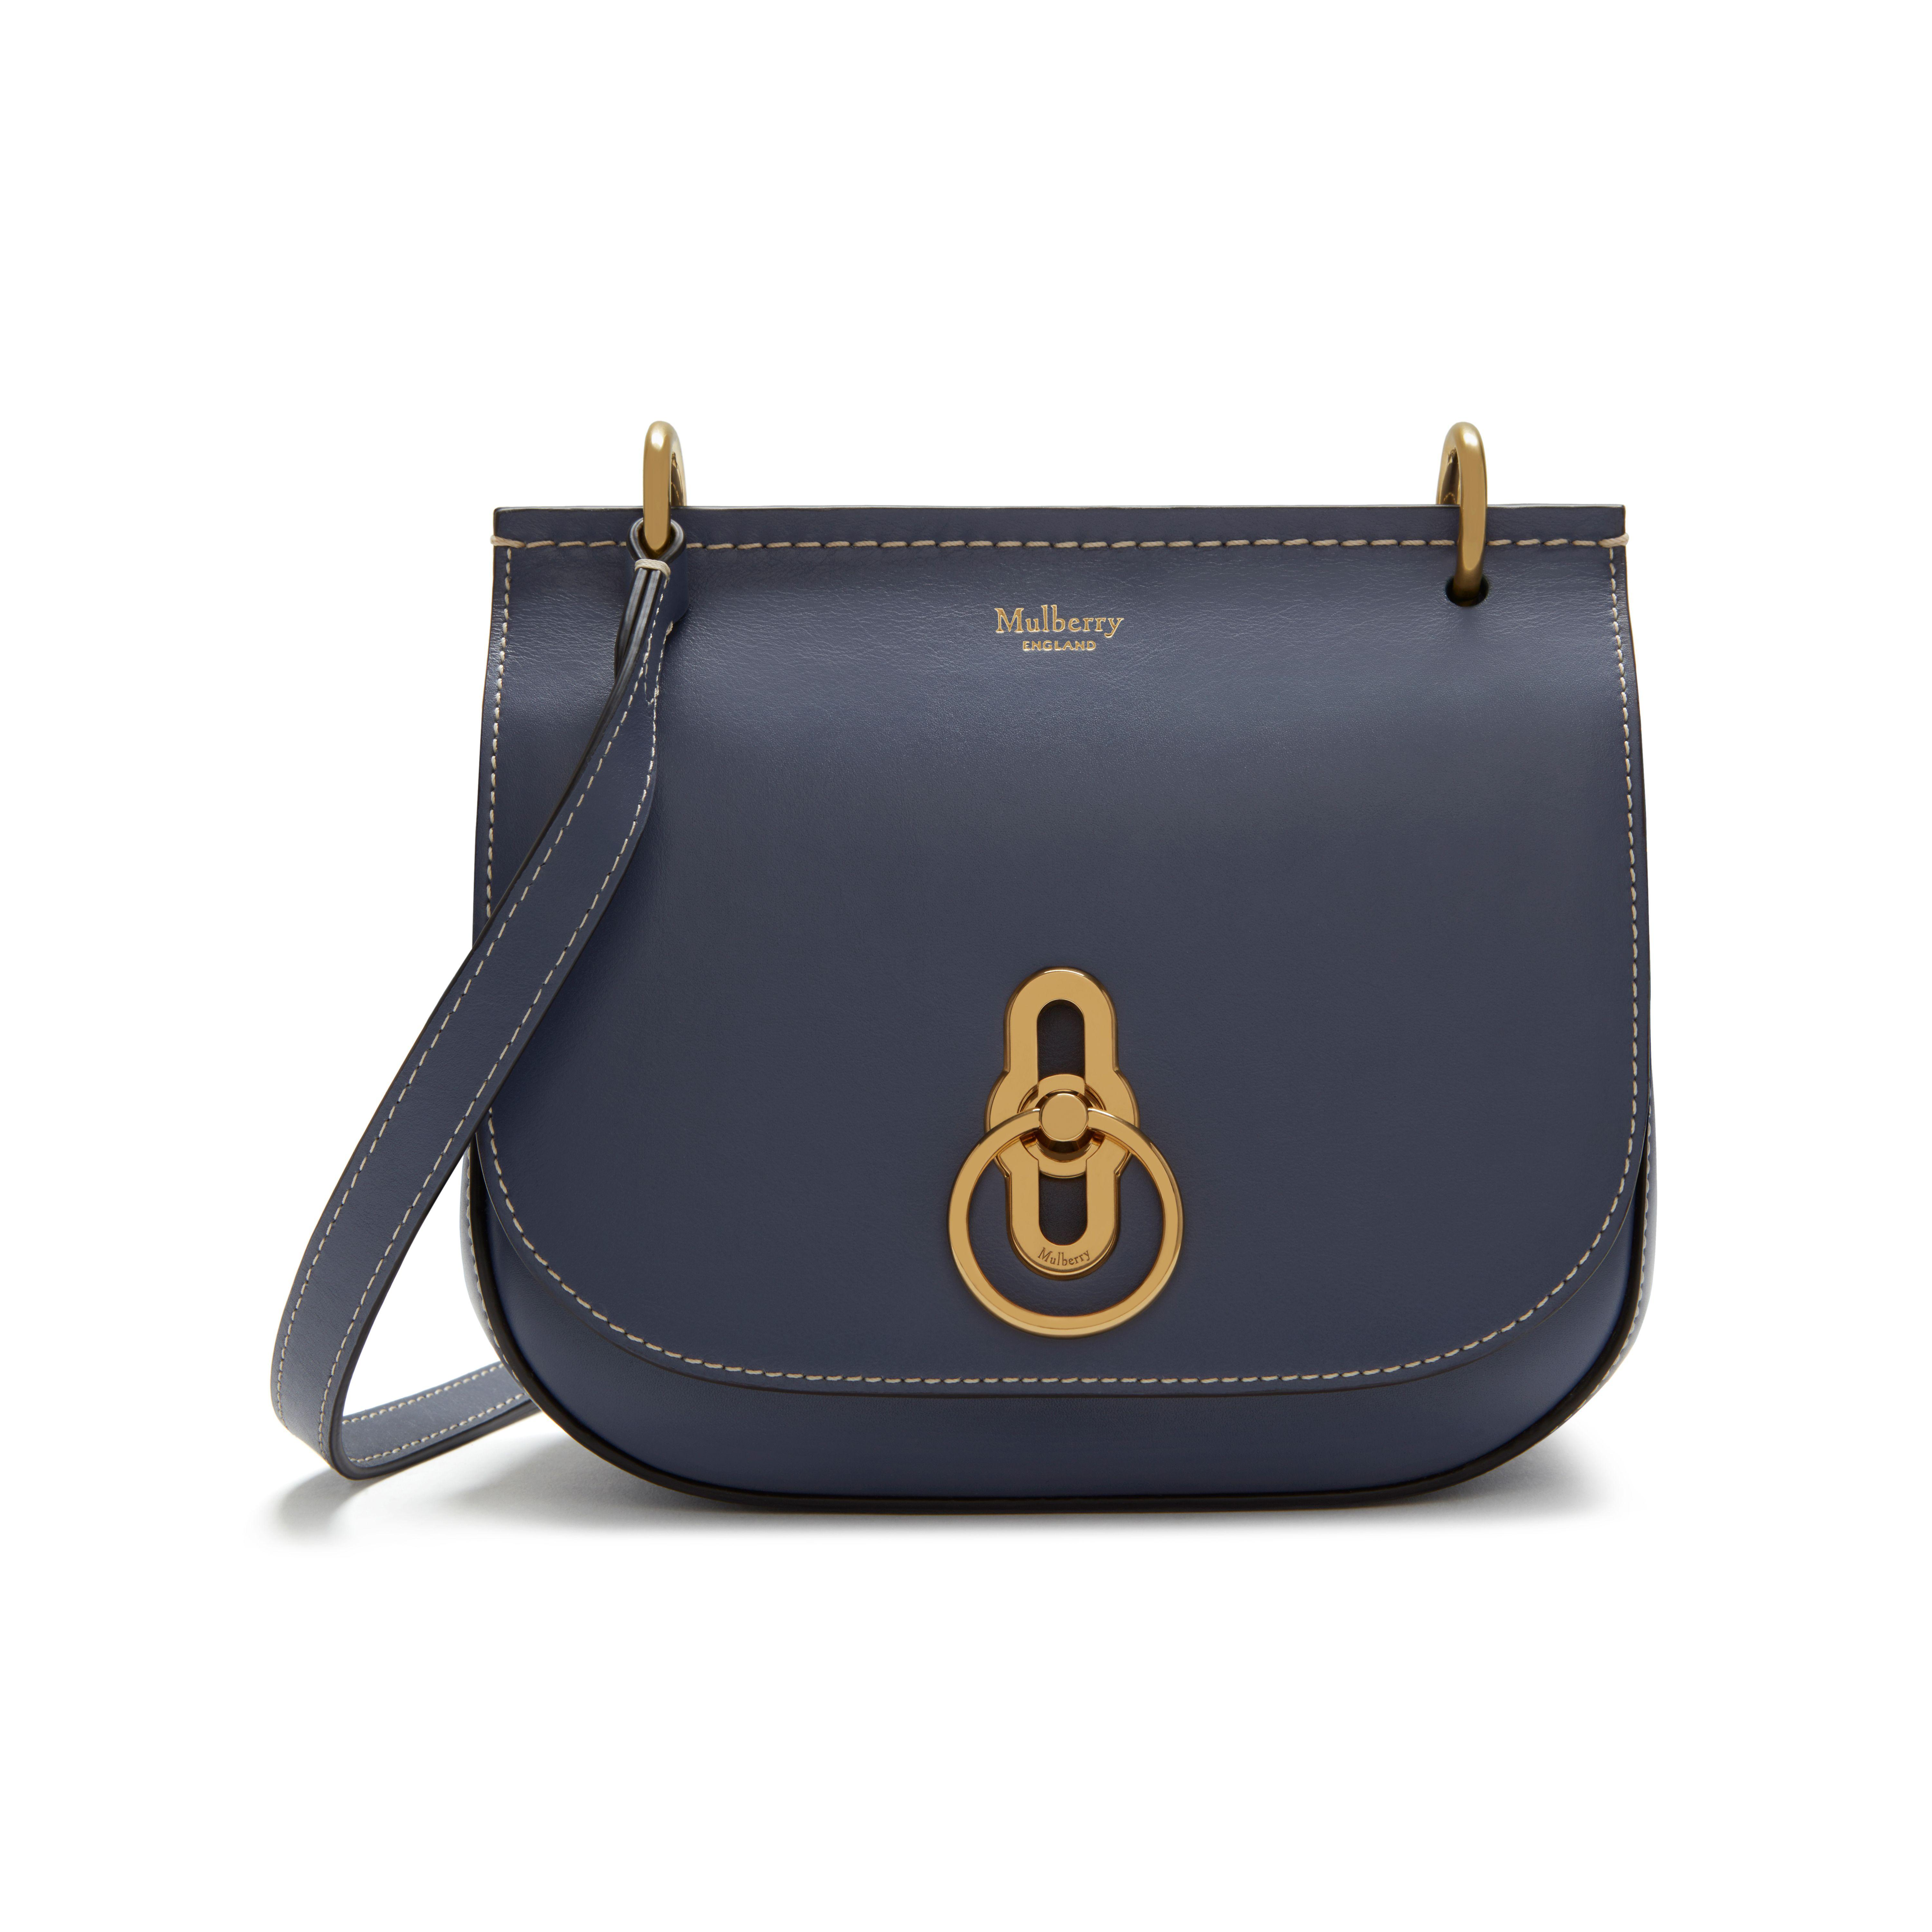 30fccce591c0 ... official lyst mulberry small amberley satchel in blue b4fb4 c4ea0